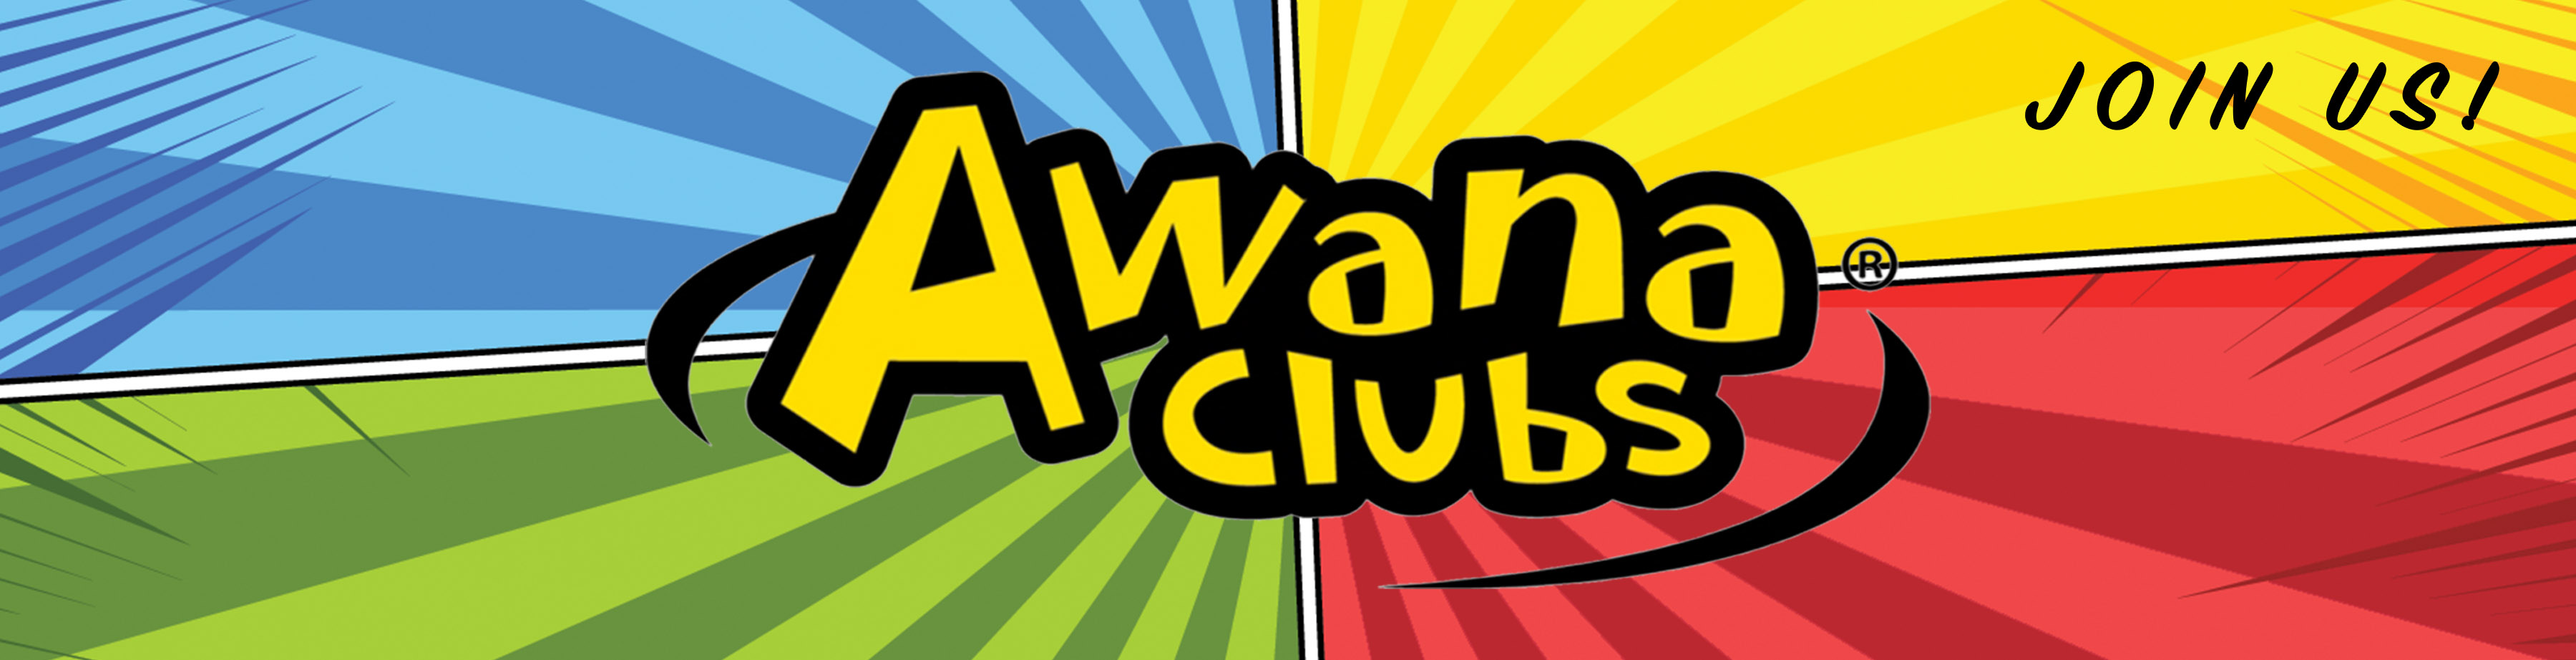 awana 2020 header plain sub